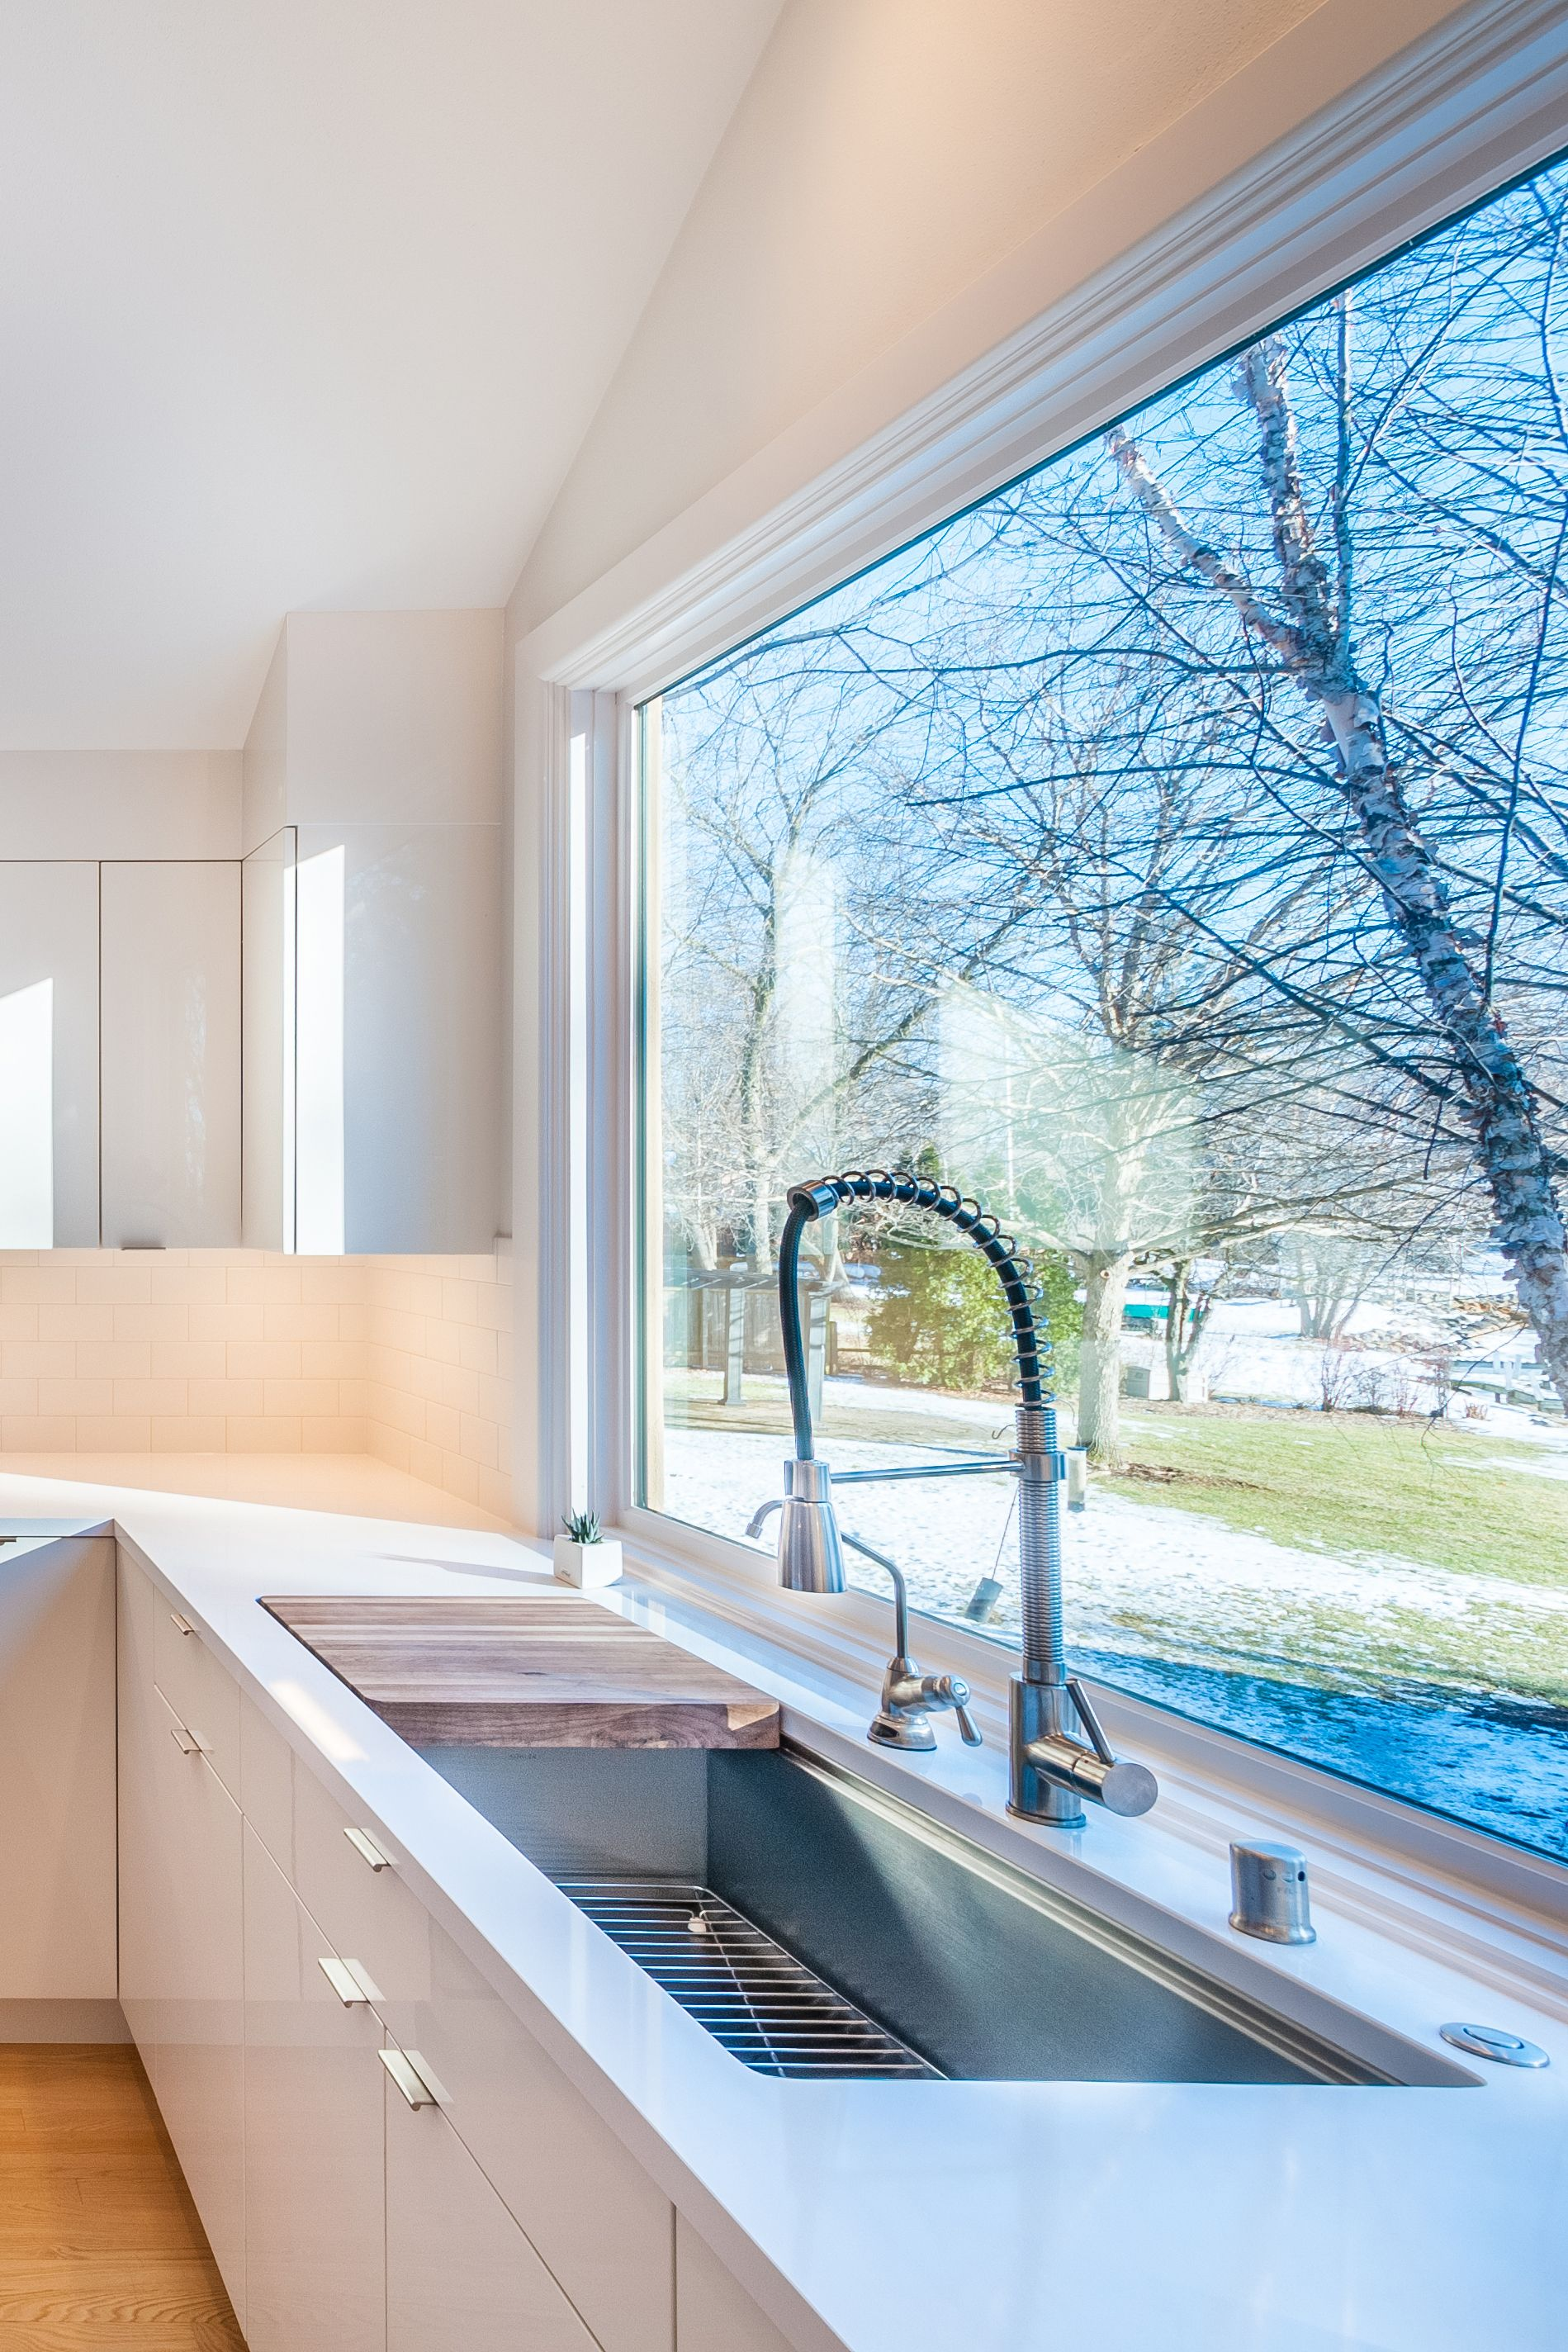 The 45 Kohler Stages Sink Was Incorporated Into This White Modern Kitchen With Images White Modern Kitchen Modern Kitchen Kitchen And Bath Design